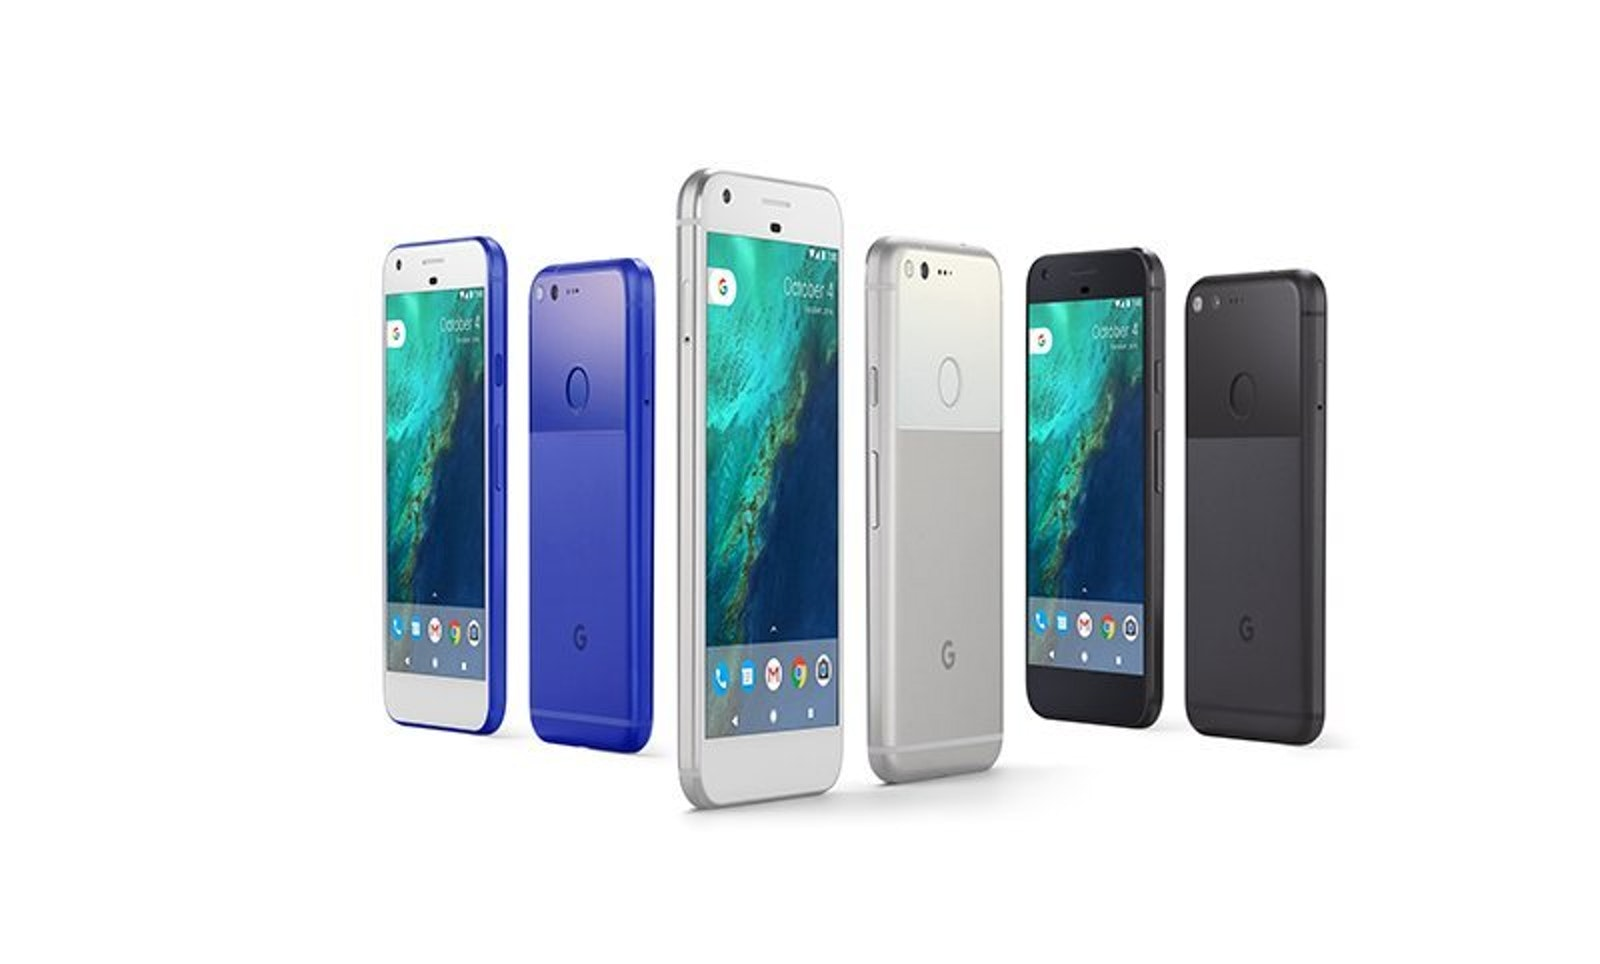 Is Google's Pixel better than the iPhone 7? In some respects, yeah.